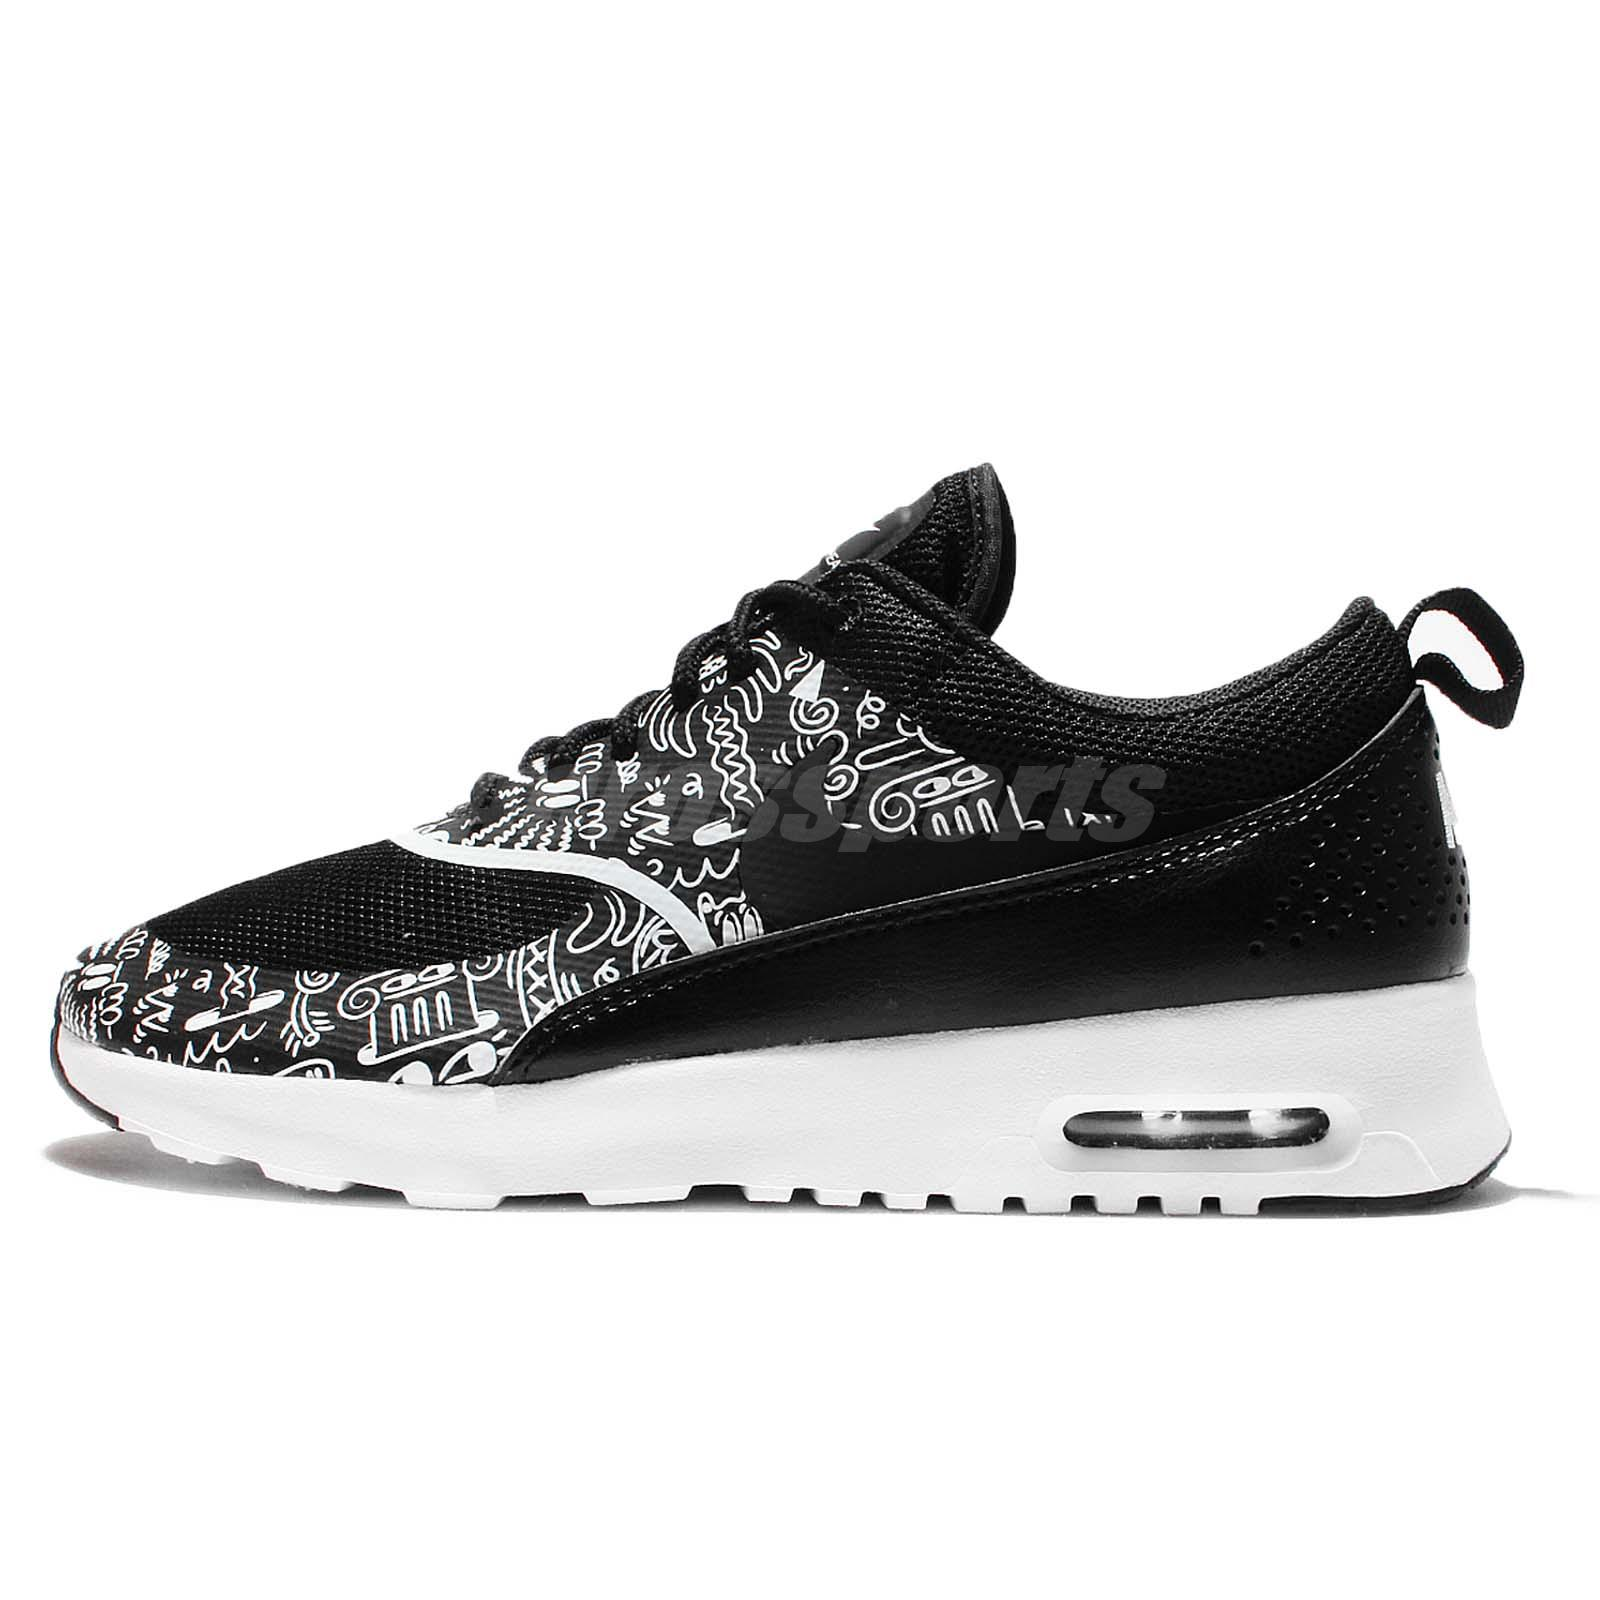 Wmns Nike Air Max 90 White Black Women Running Shoes Sneakers 325213131